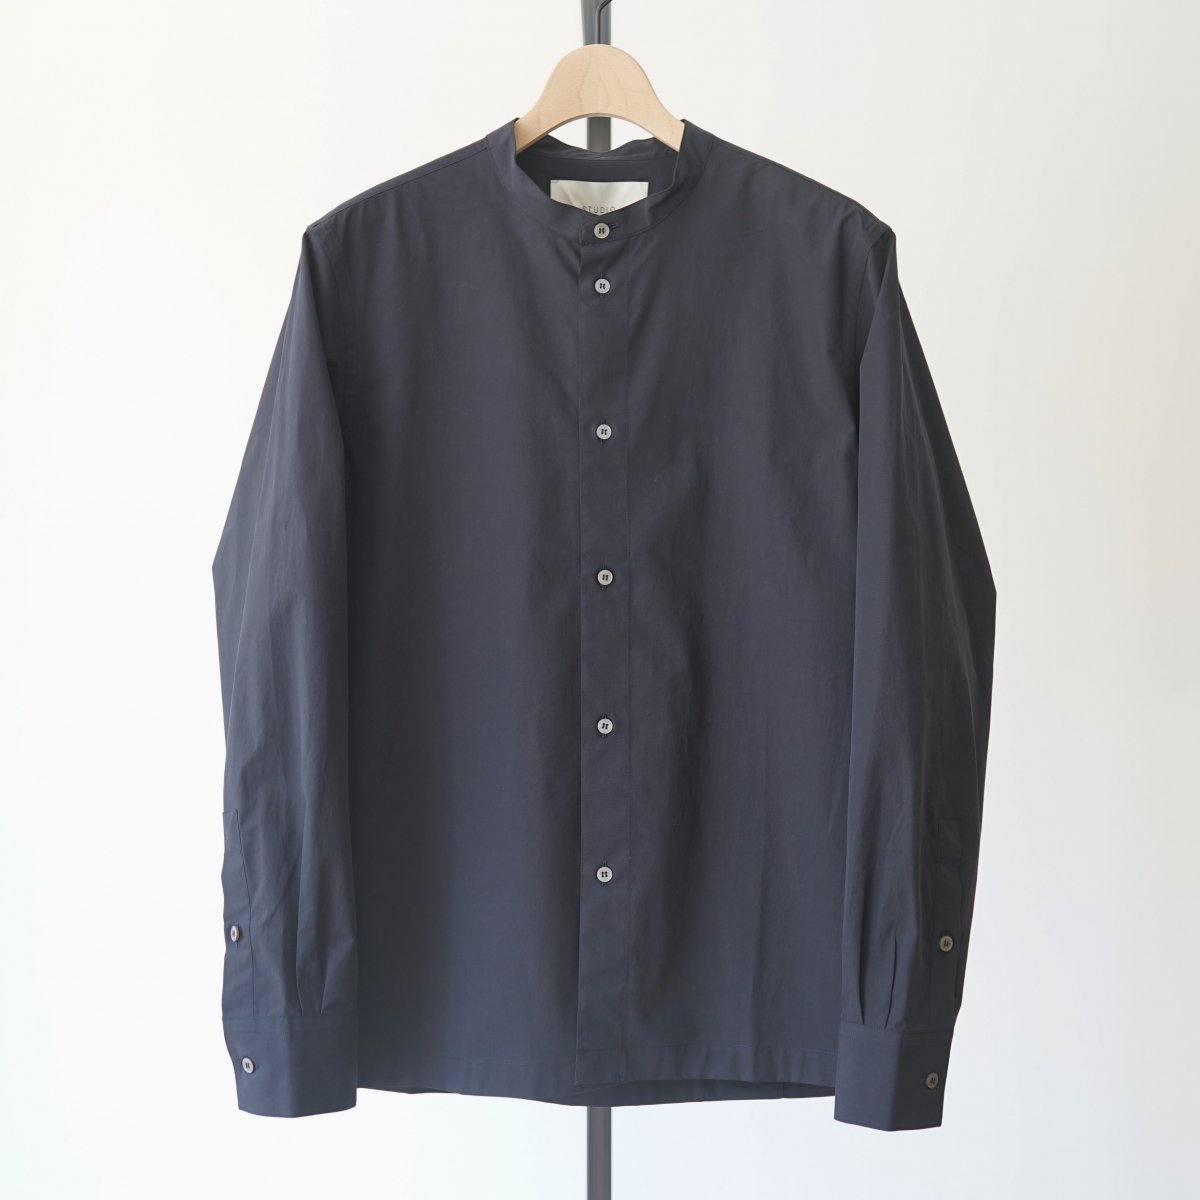 【STUDIO NICHOLSON スタジオニコルソン】POWDER COTTON BOWLING PLEAT COLLARLESS SHIRT - DARK NAVY